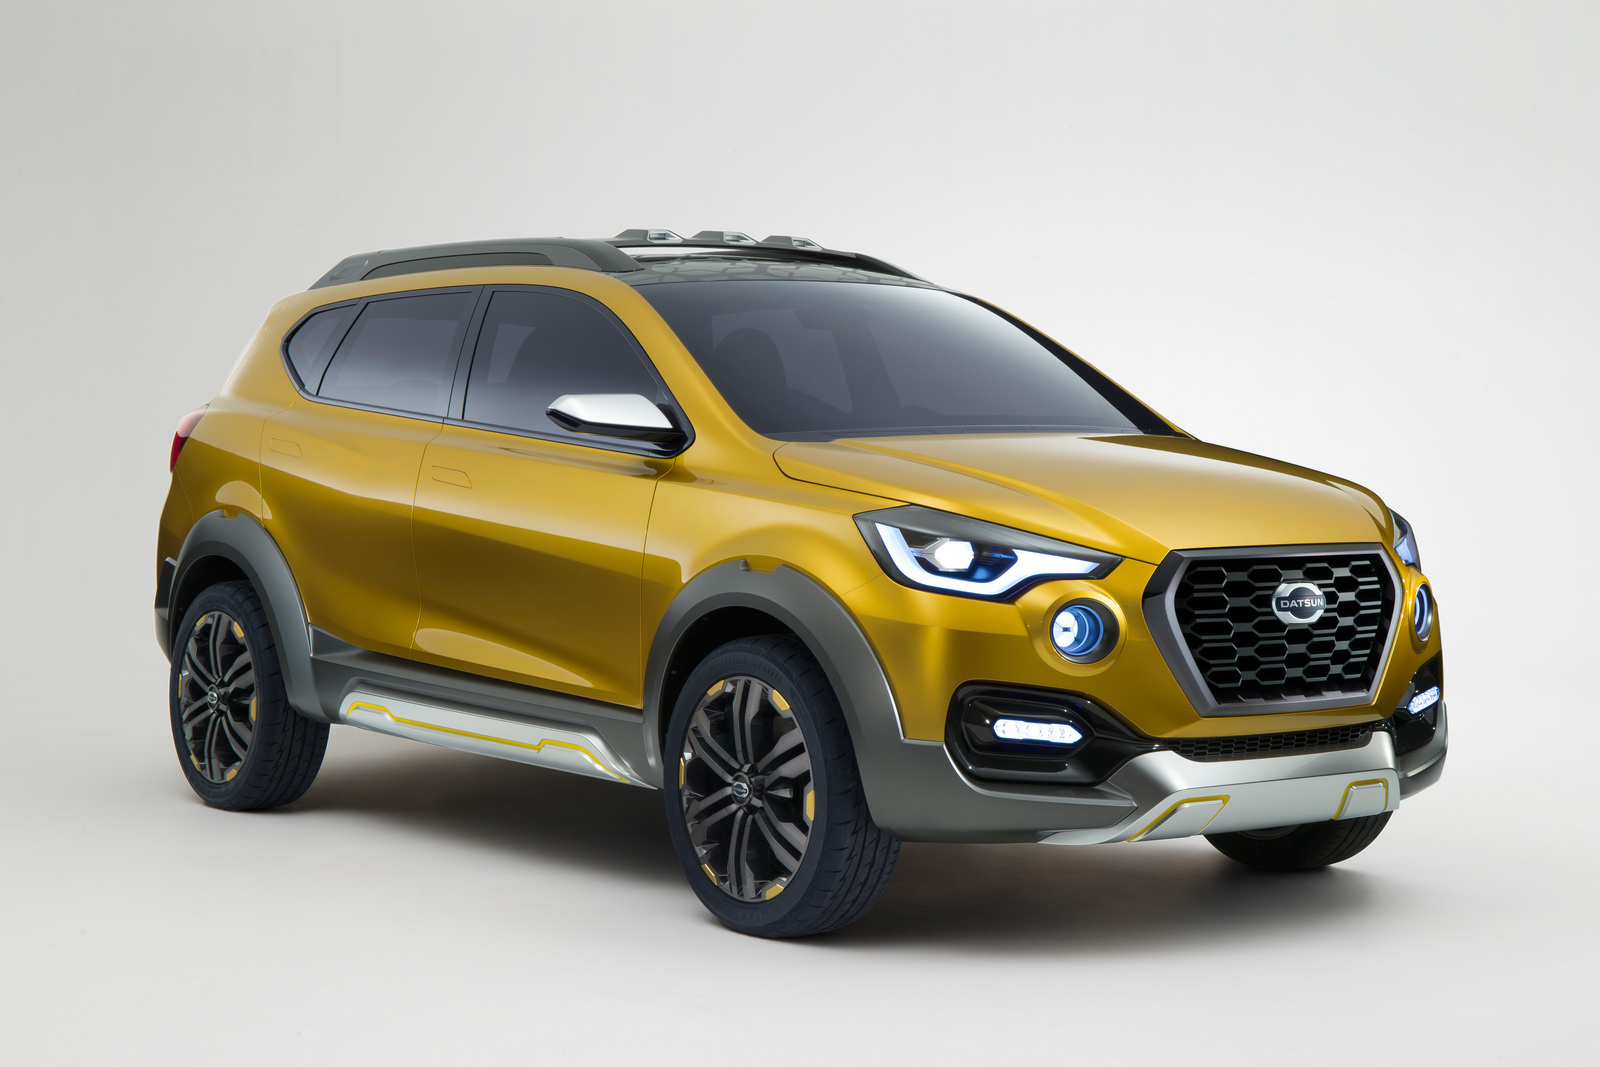 Upcoming Auto Expo 2016 to Showcase Datsun Go-Cross